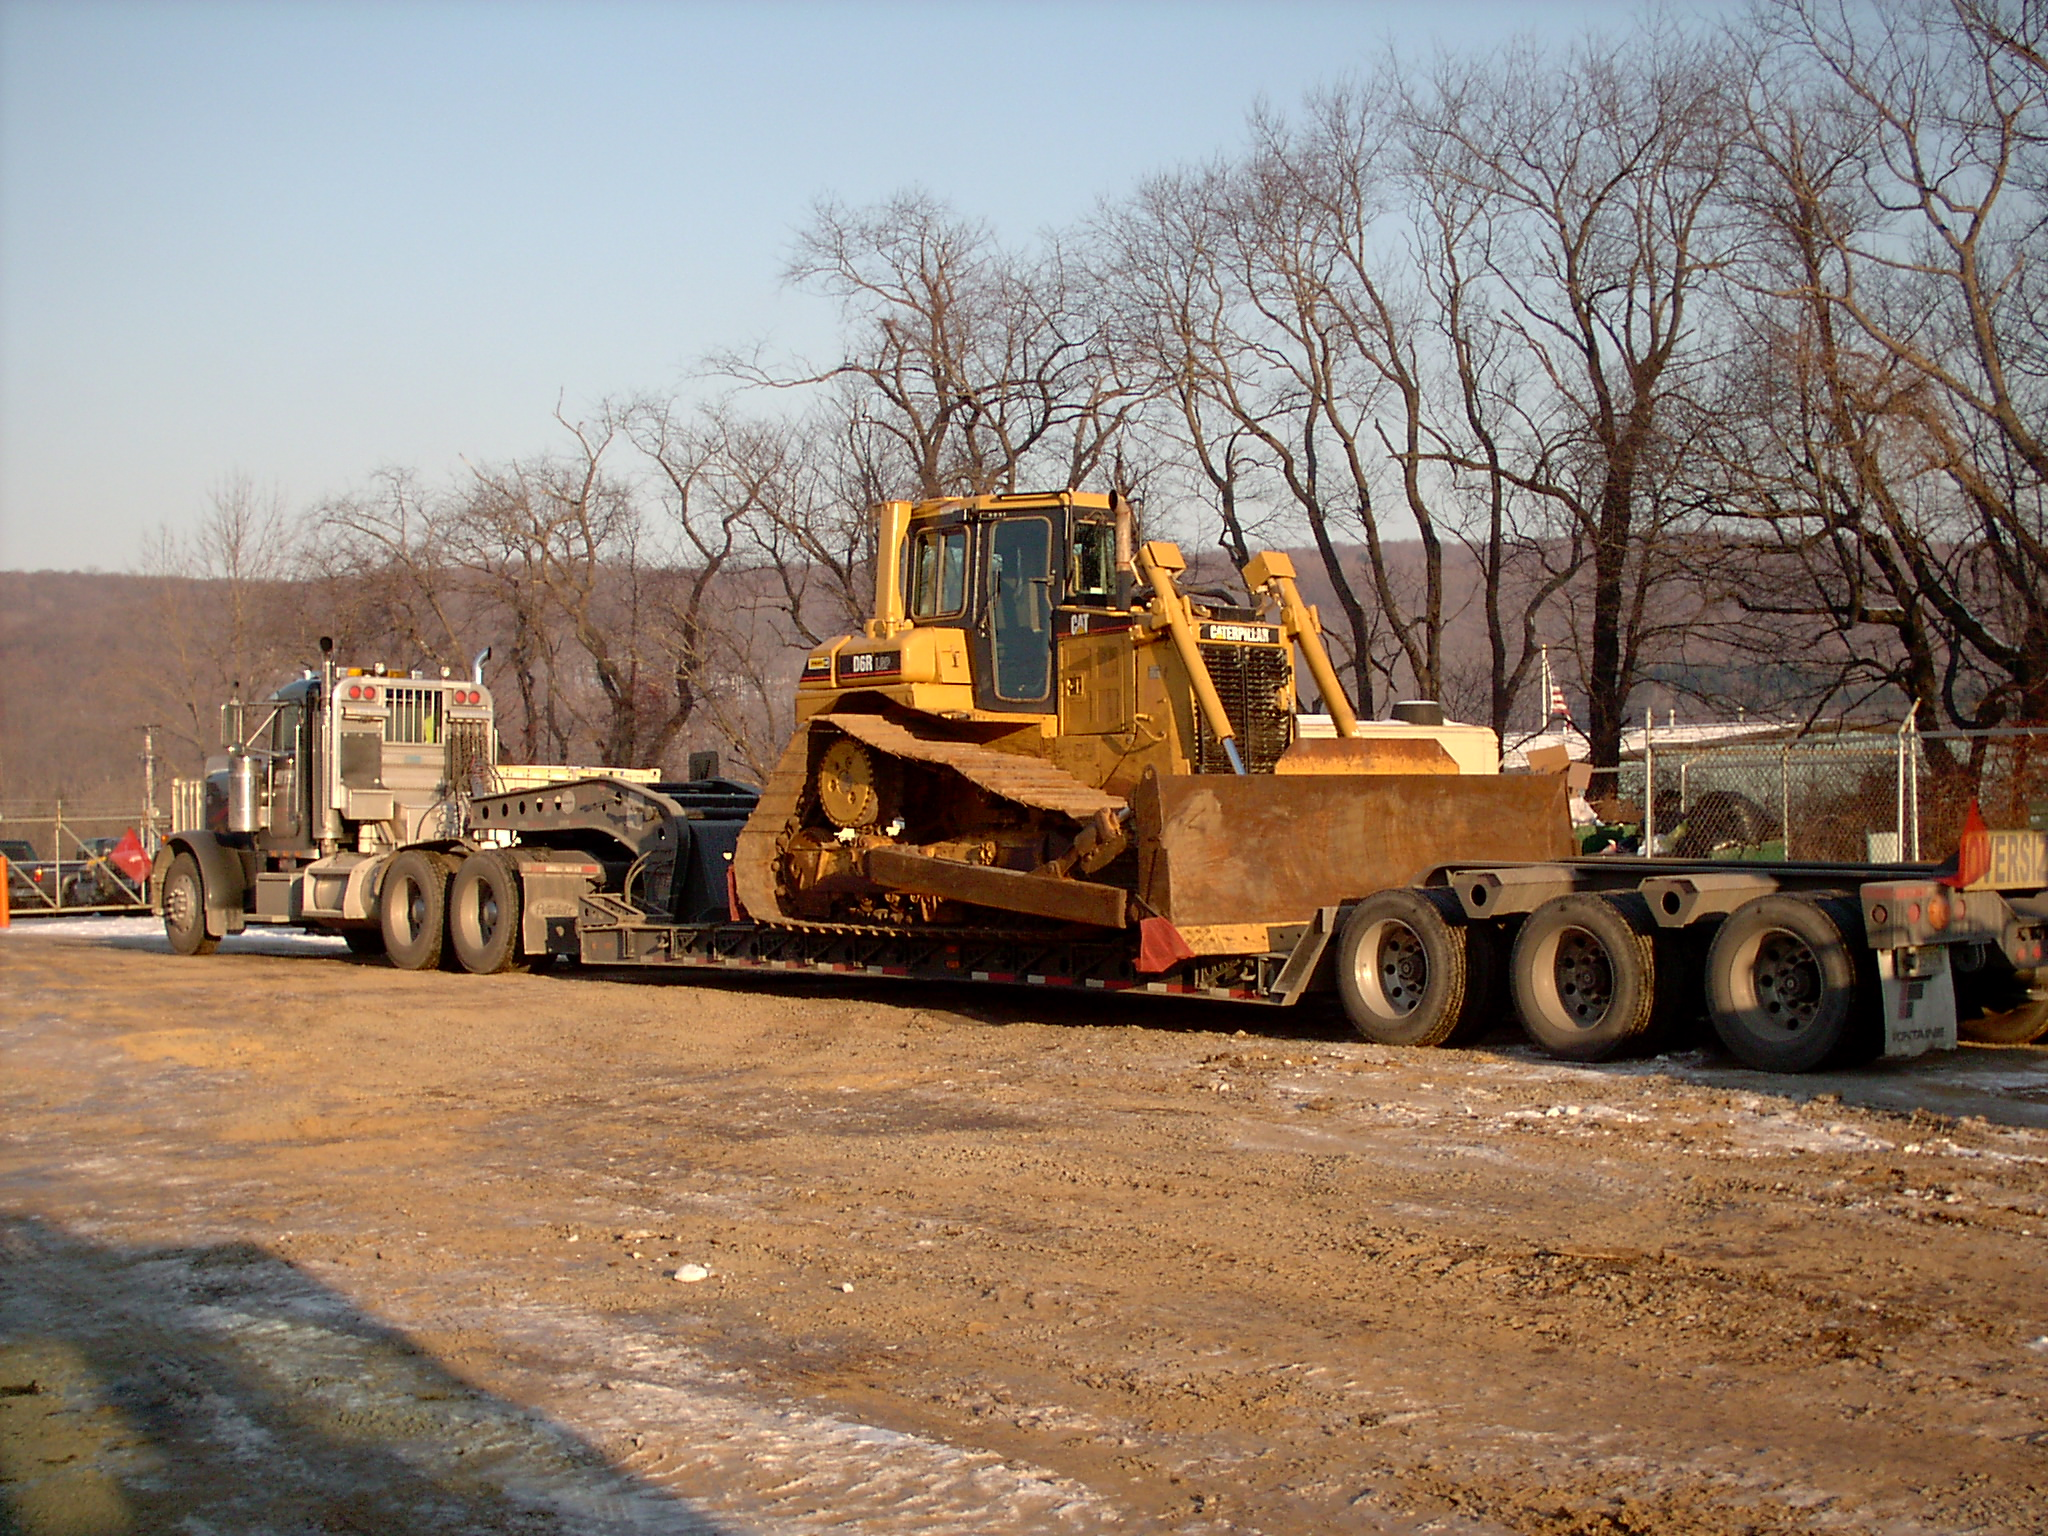 Mike's Towing & Recovery image 21